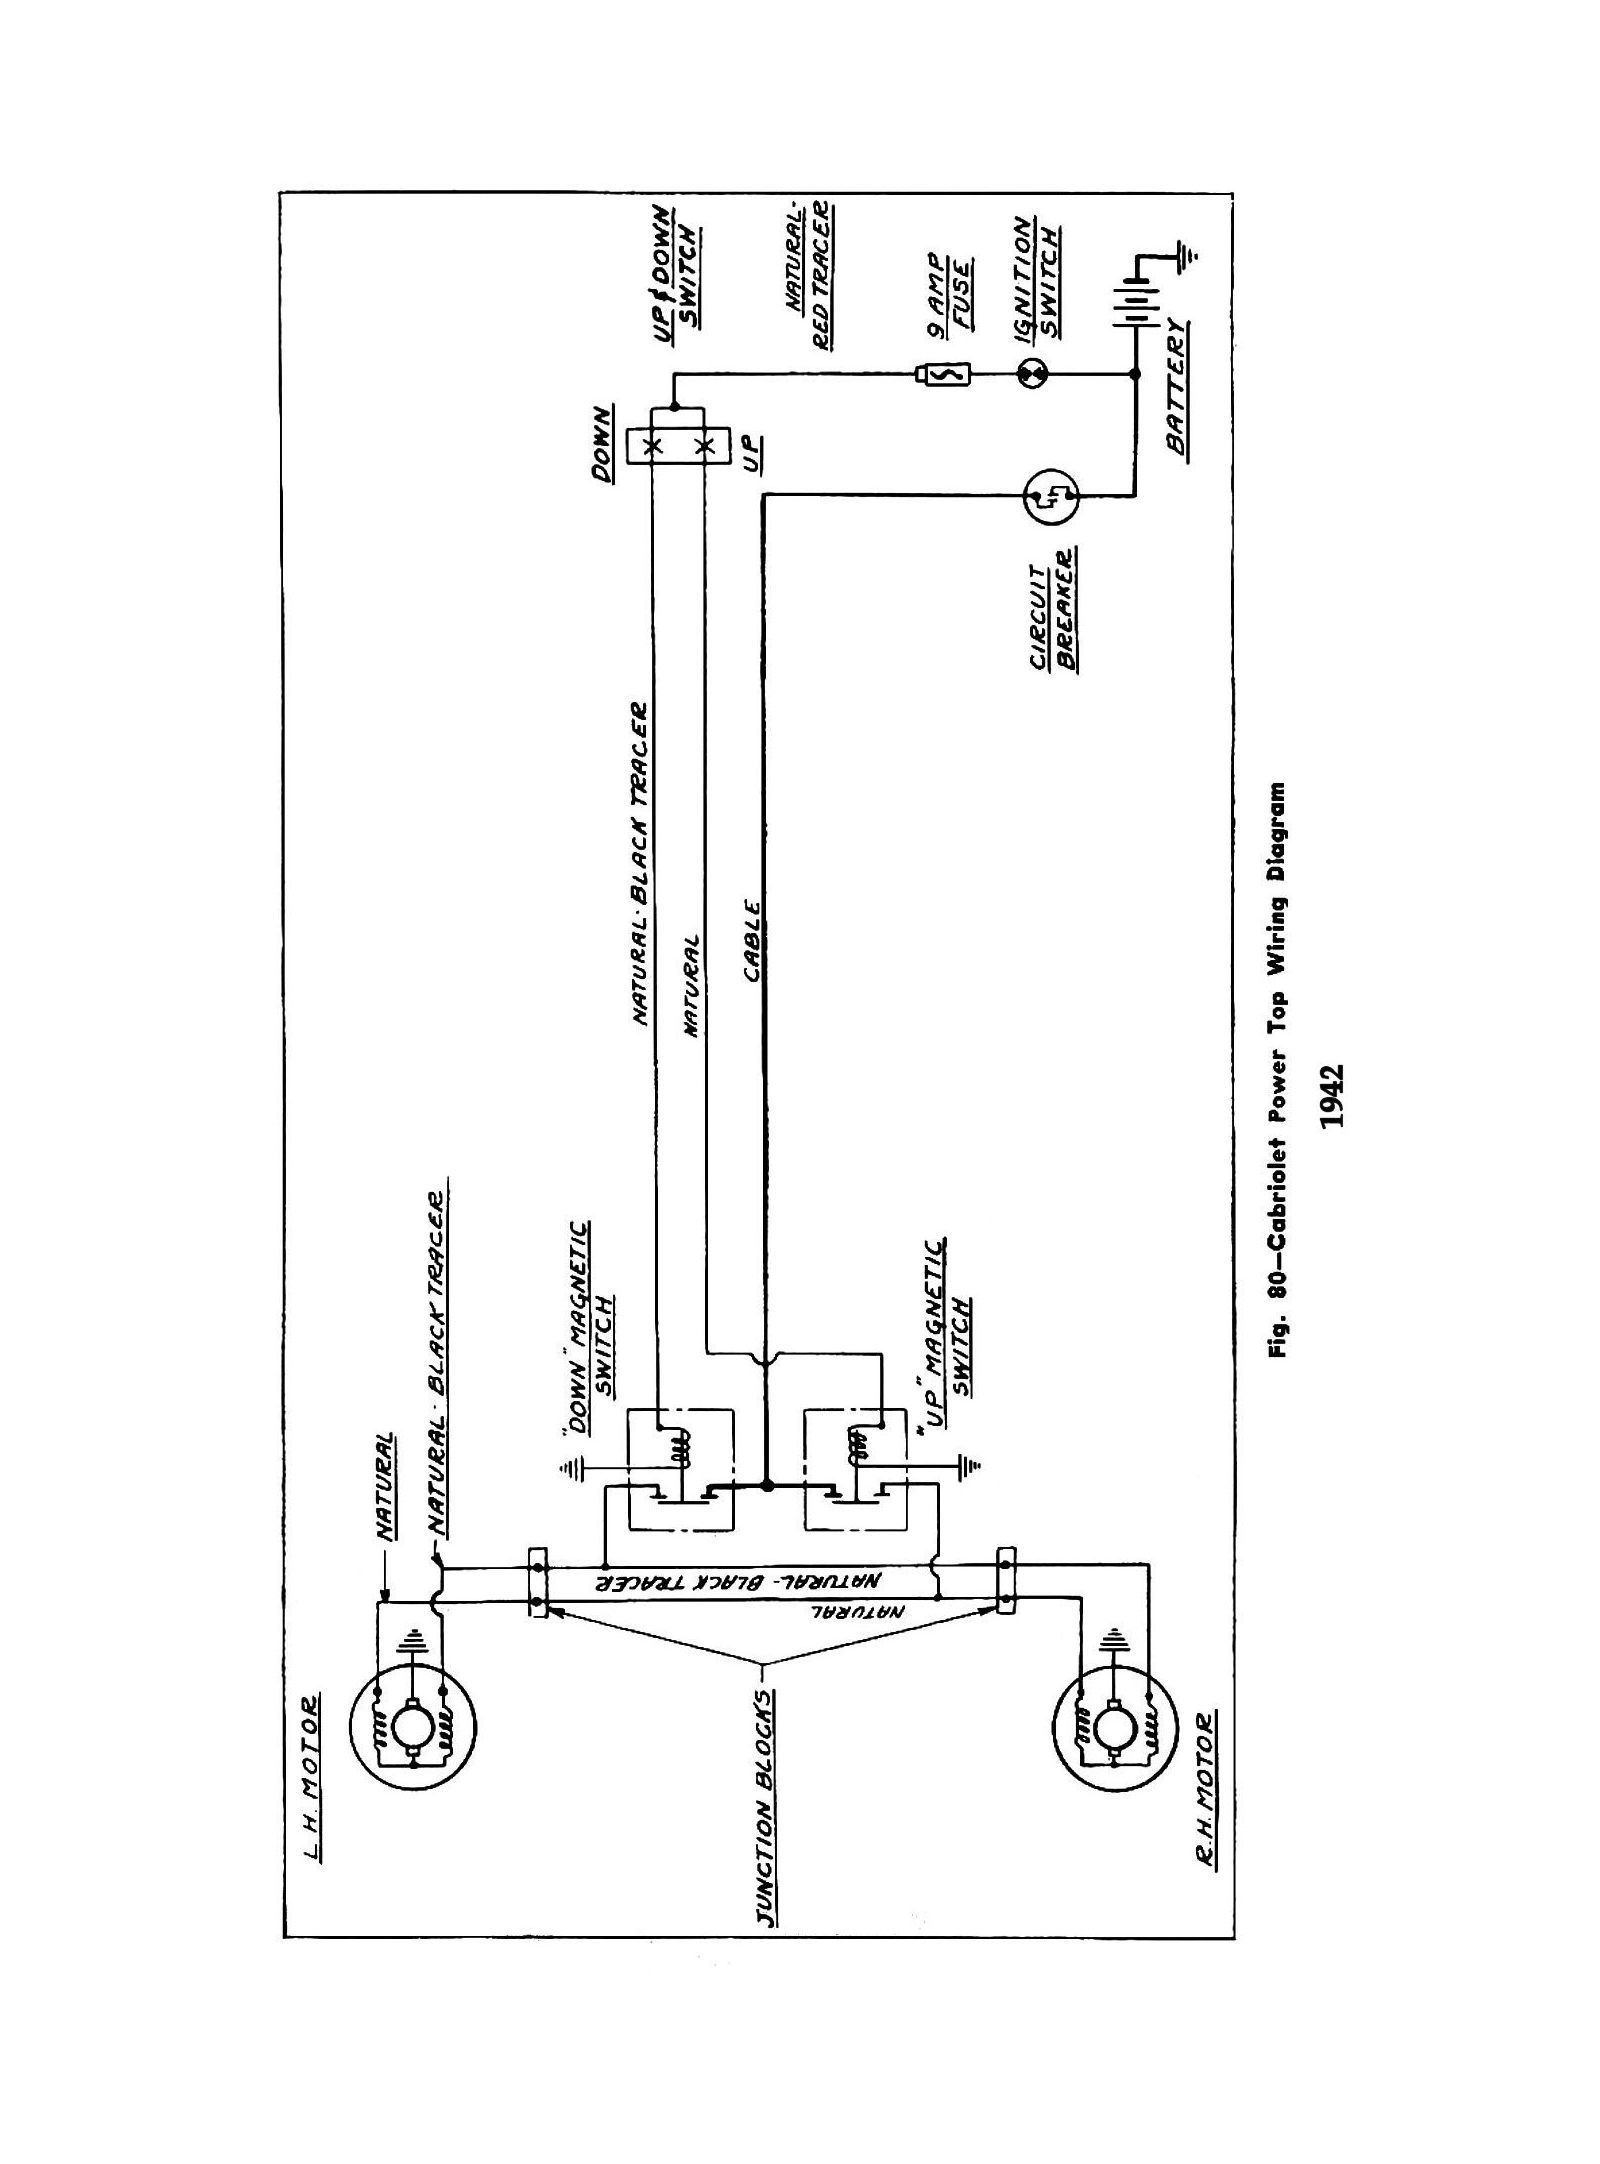 73 sportster wiring diagram 73 just another wiring site